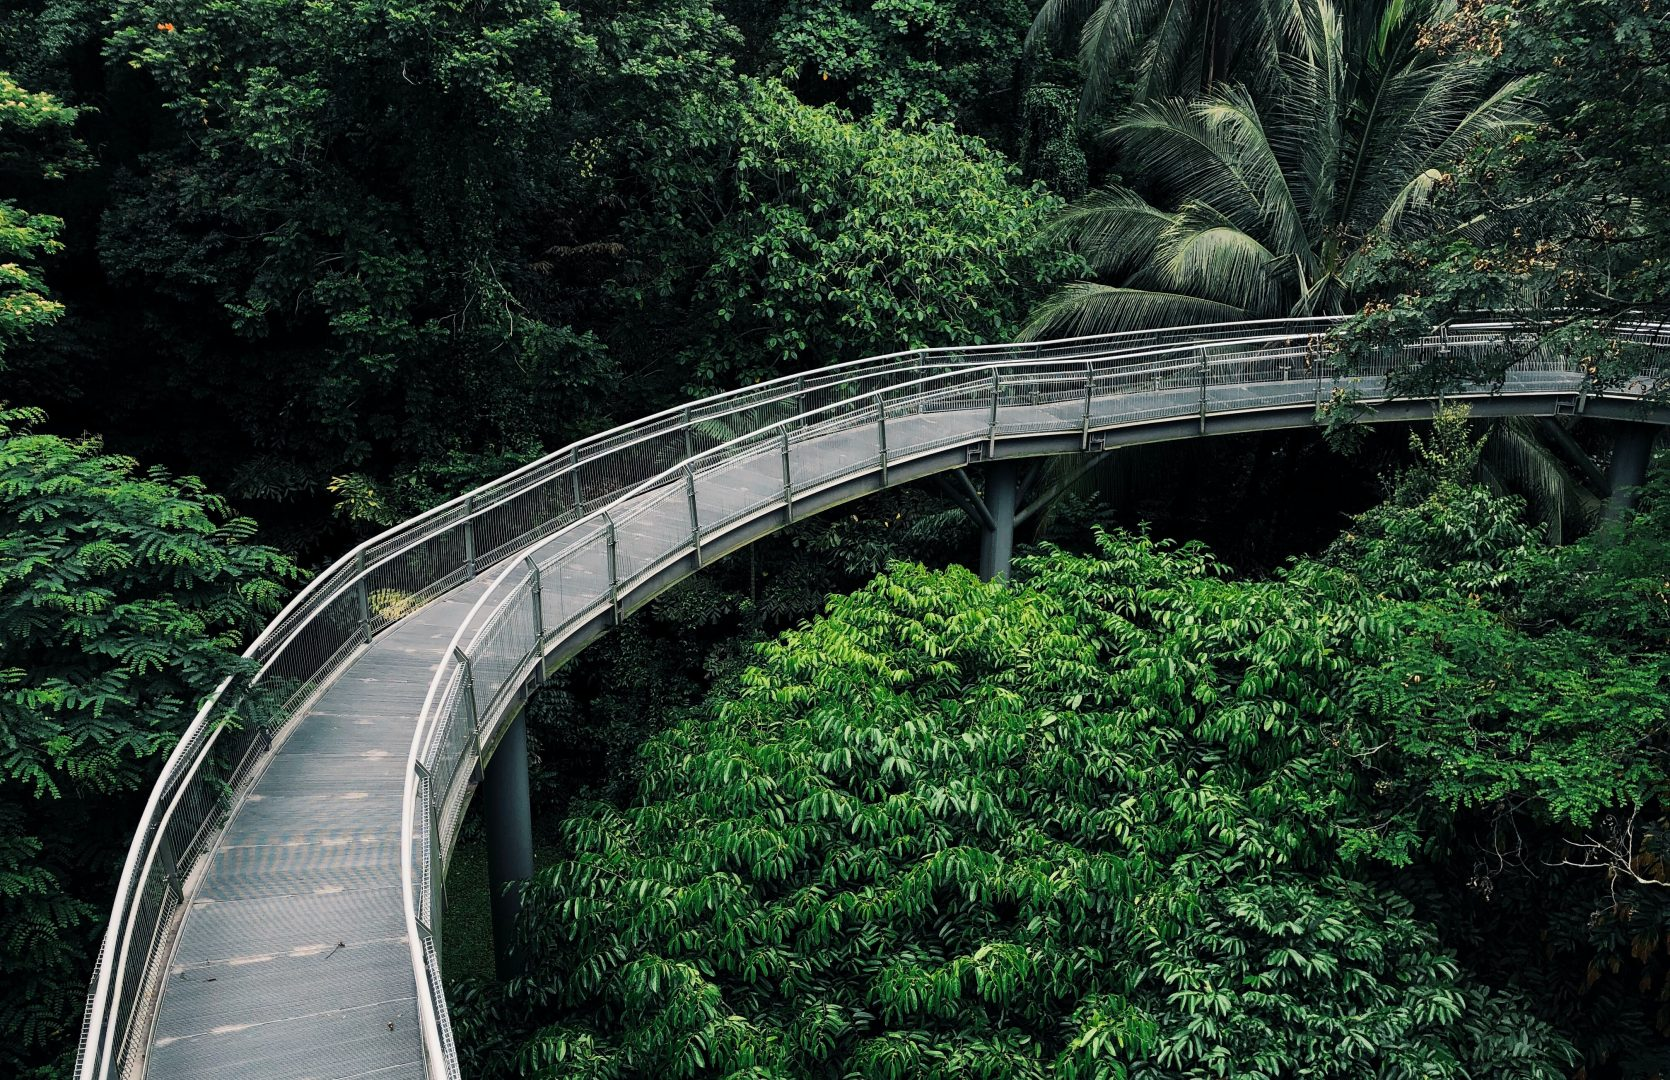 bridge above trees